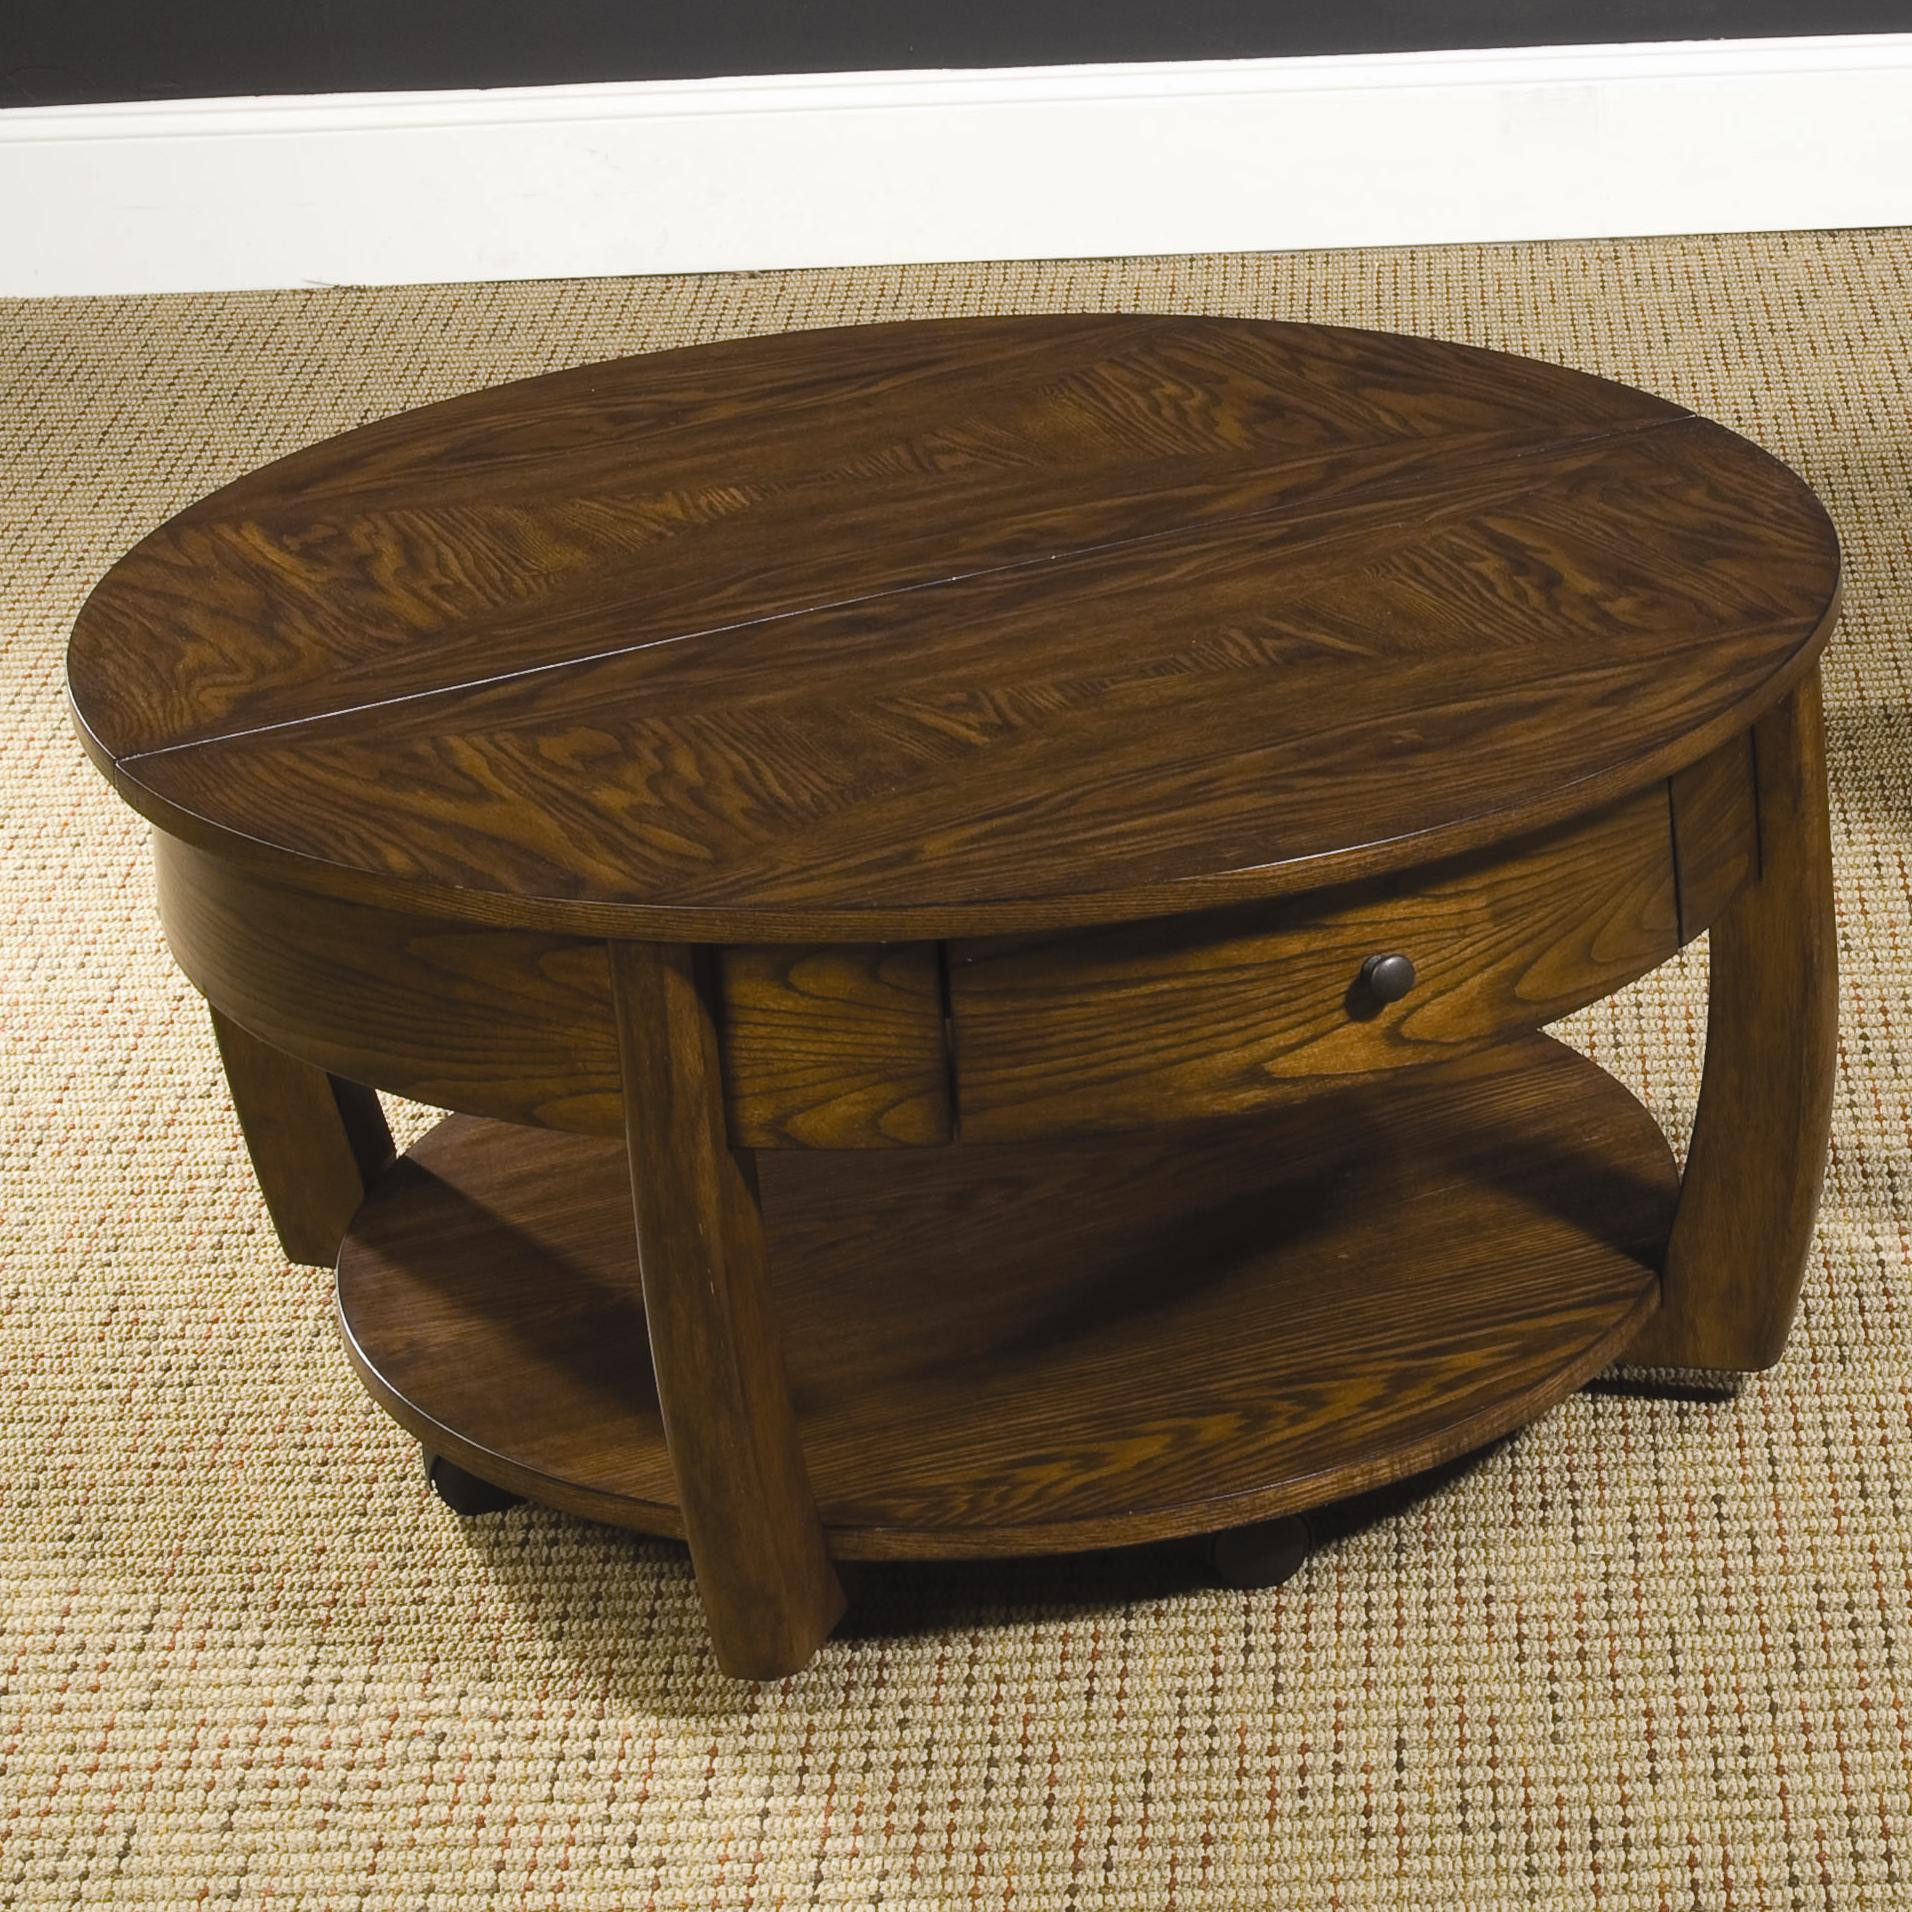 Best ideas about Round Lift Top Coffee Table . Save or Pin Round Lift Top Cocktail Table with Lower Shelf and Drawer Now.